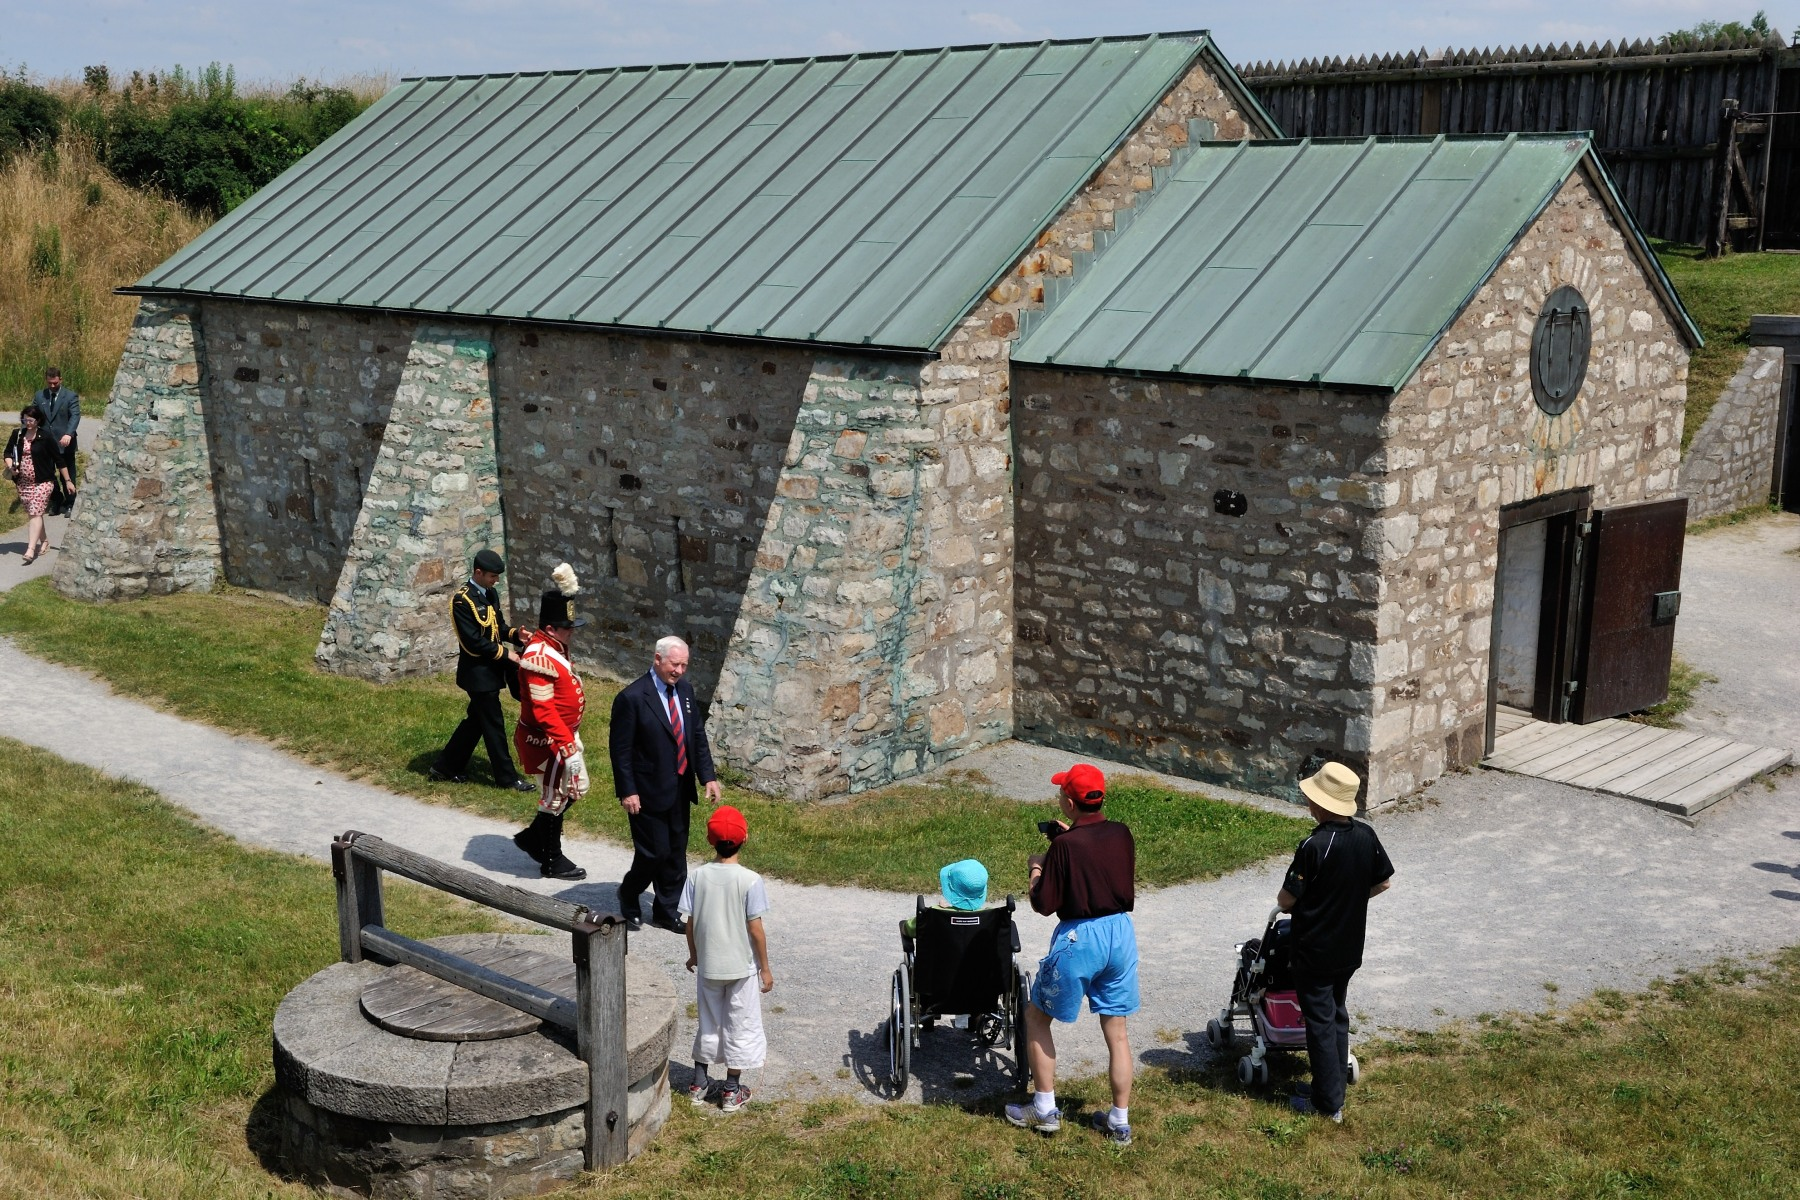 He also toured the powder magazine, the oldest surviving military building in Ontario.